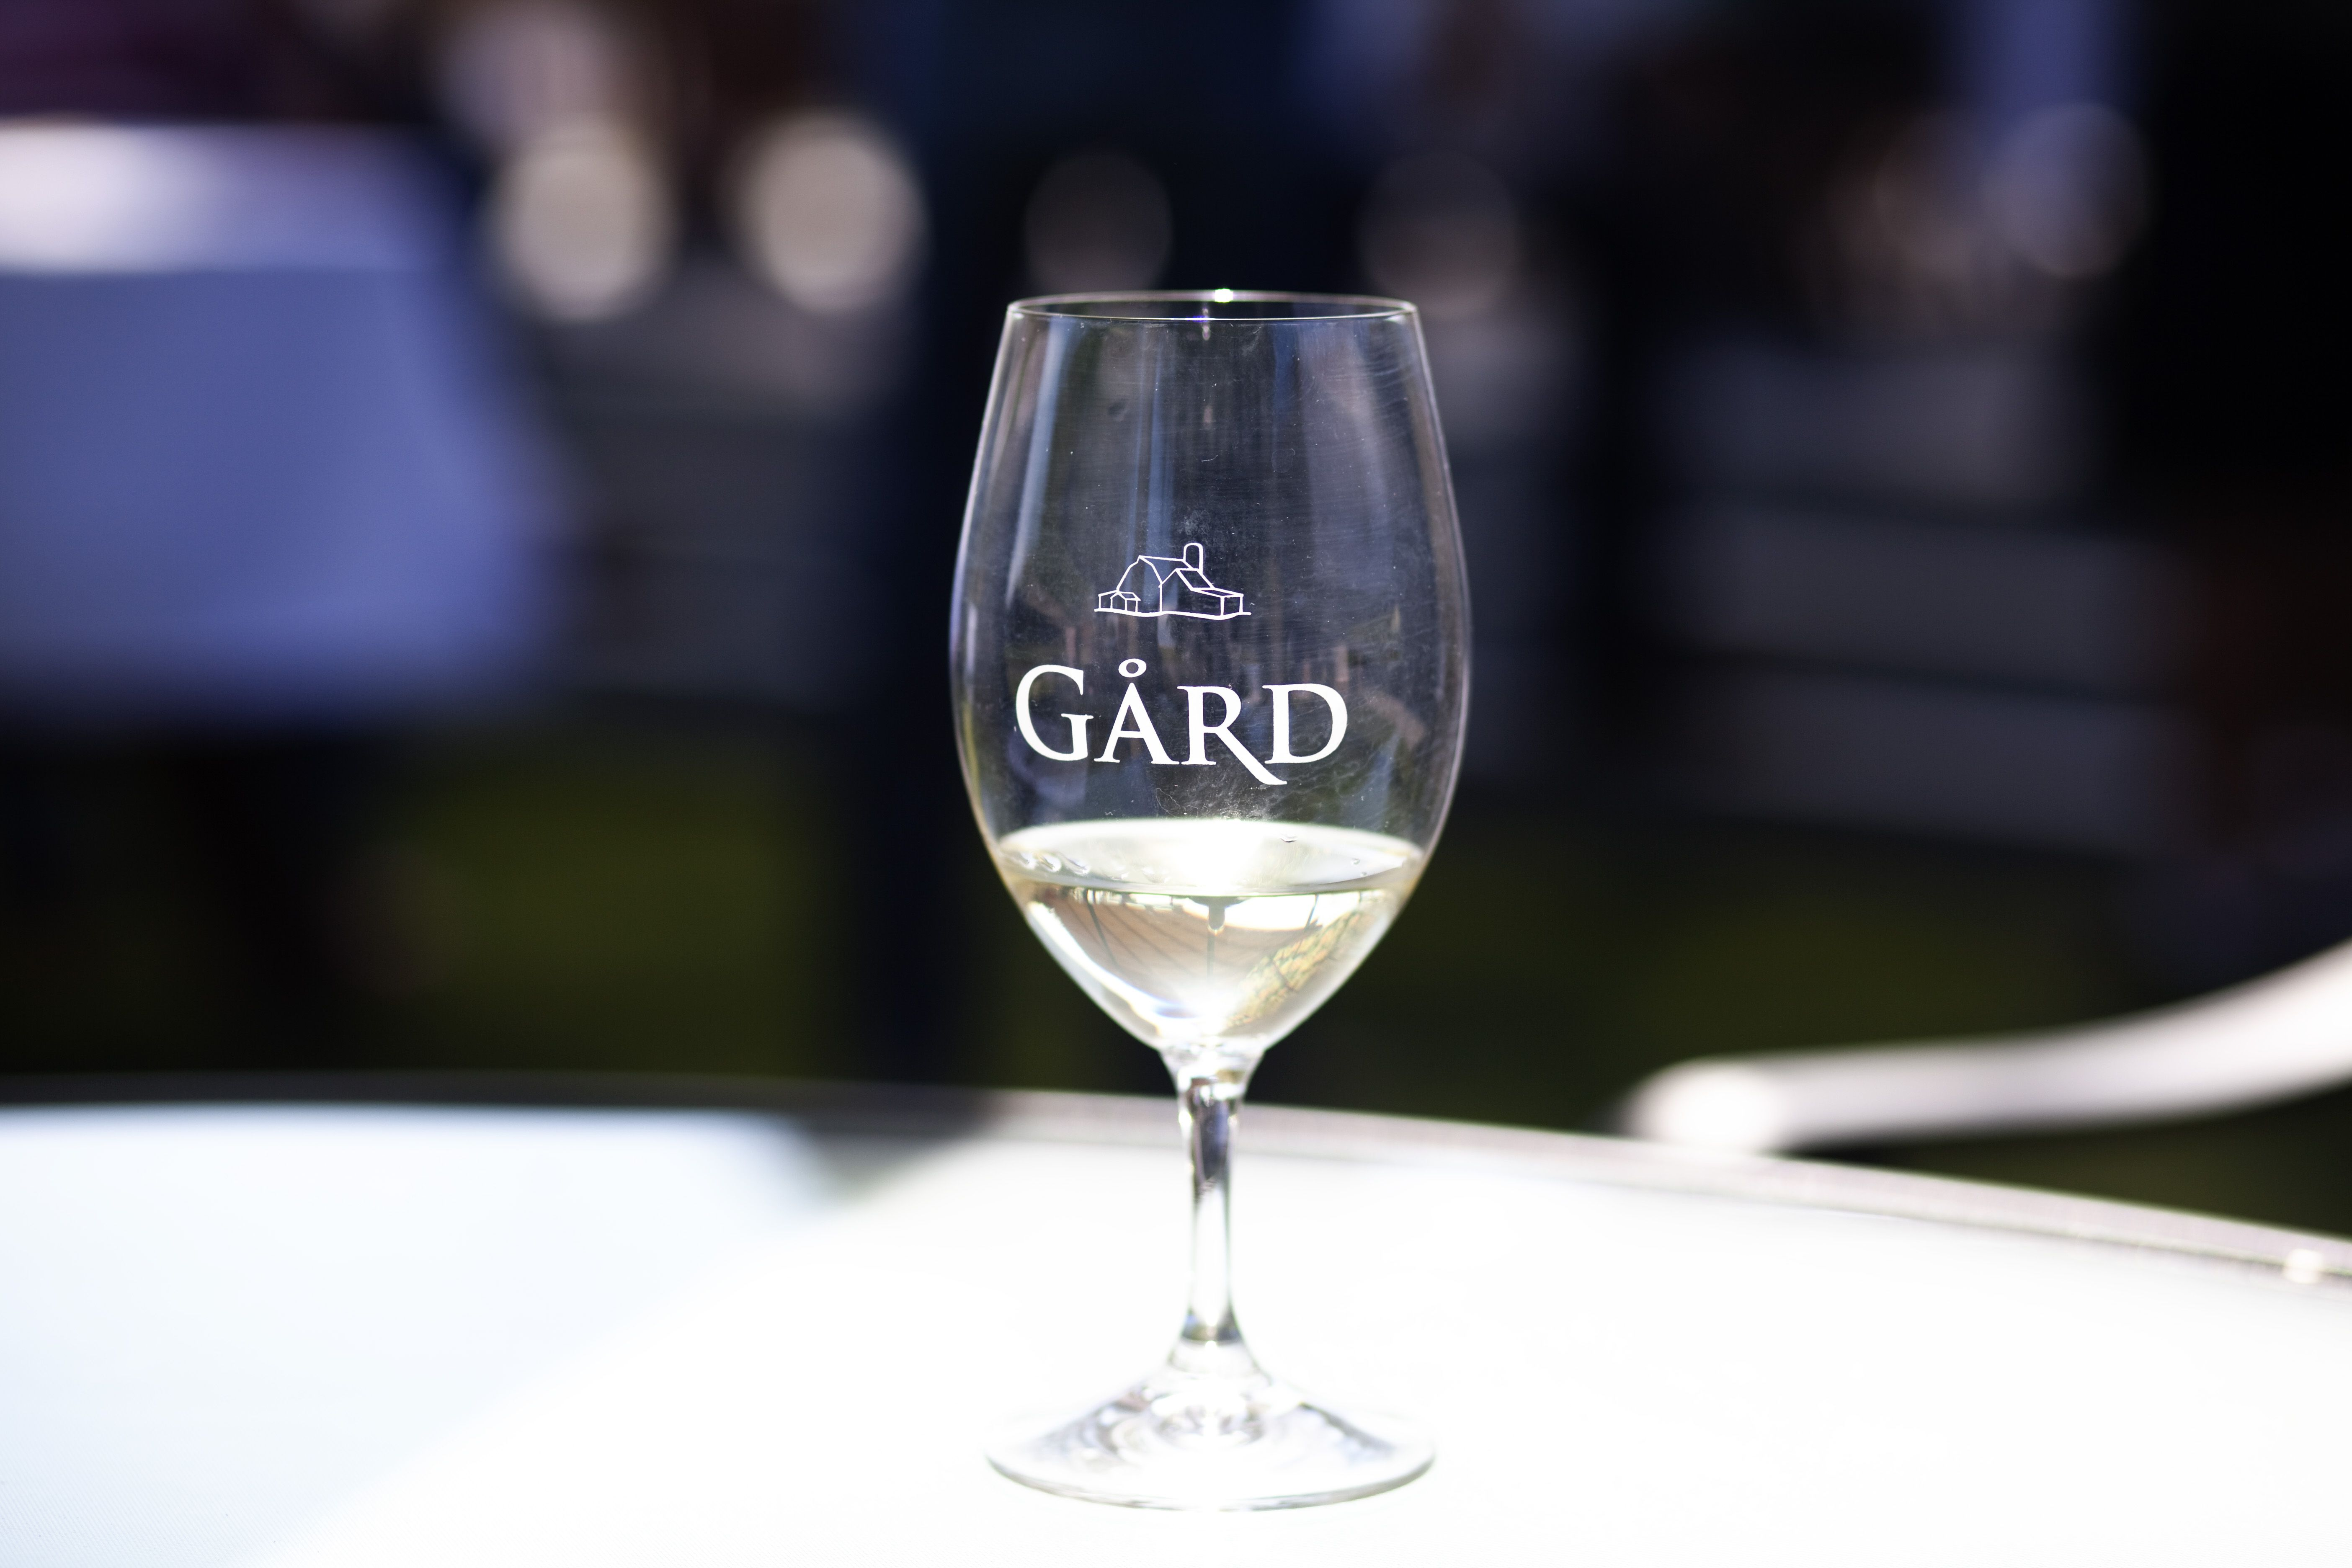 Summertime dreams of sunshine and white wine. Gard Vintners.